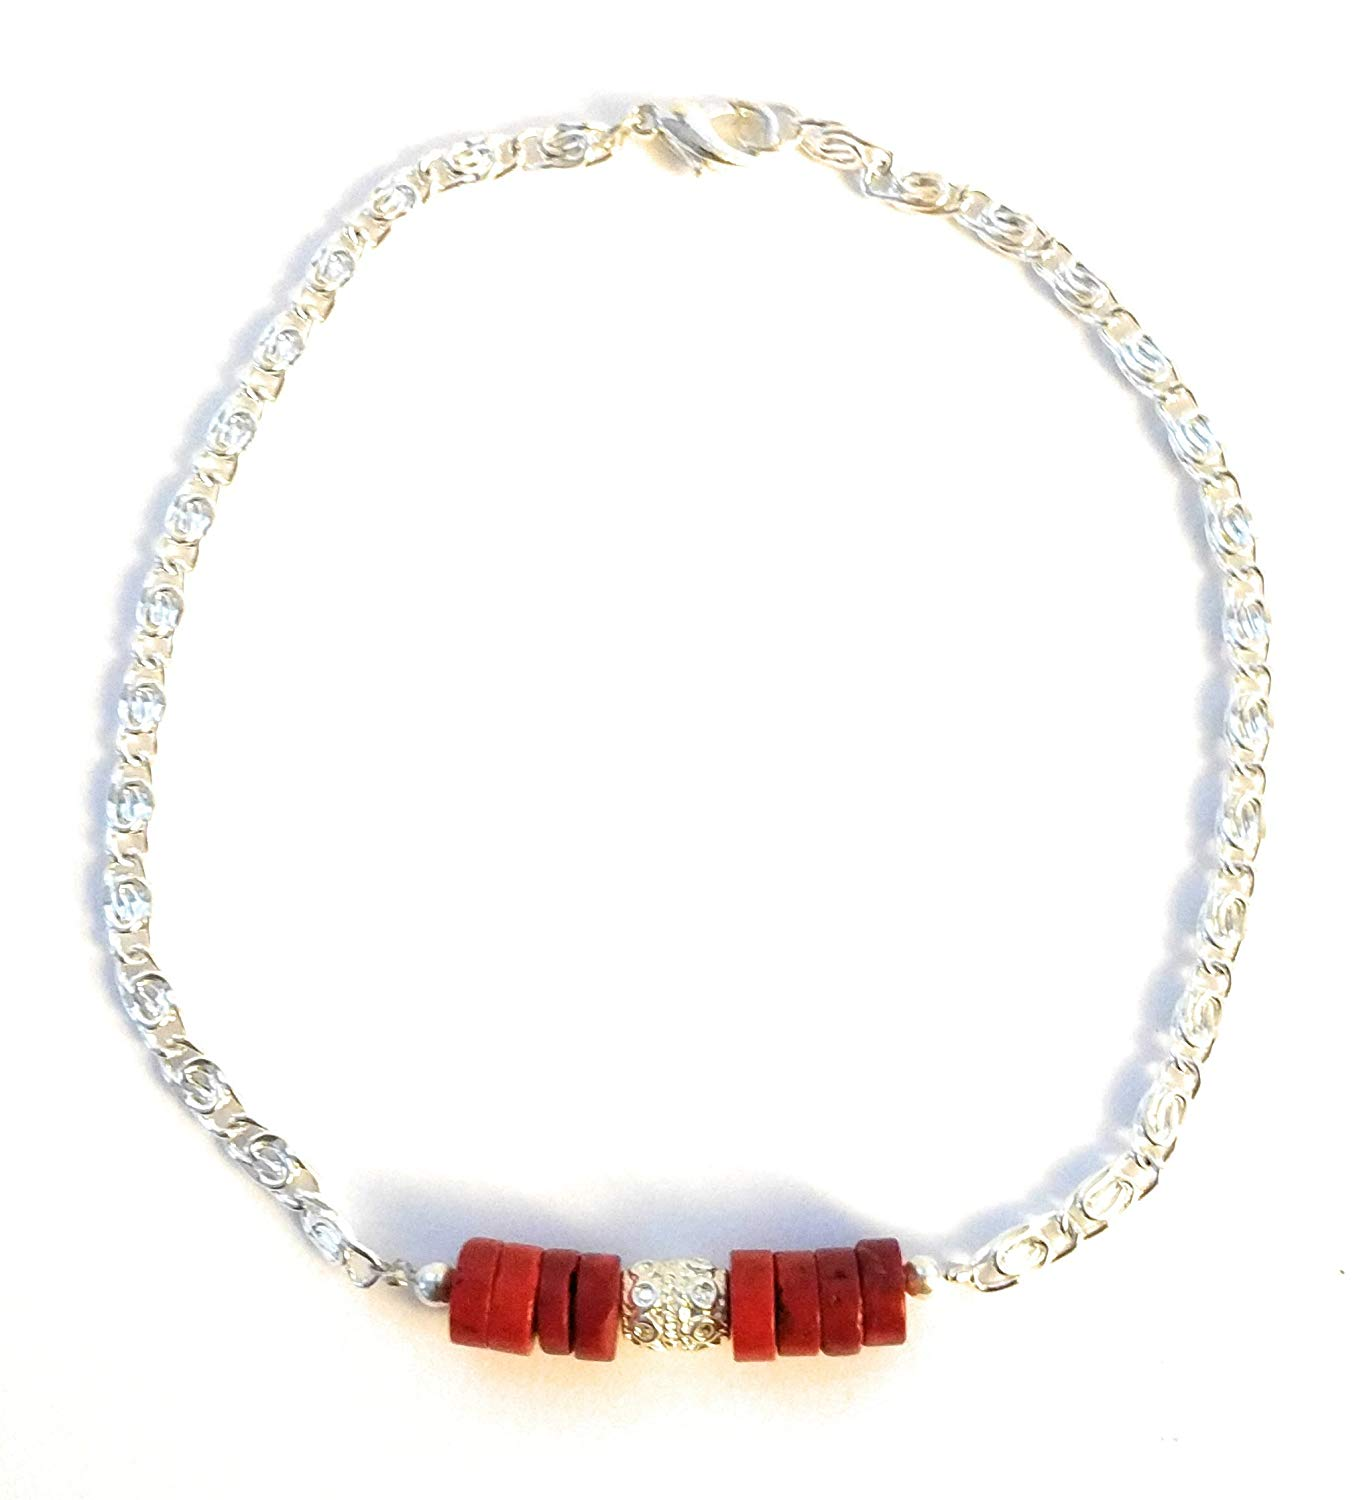 Las Silver Anklet Red Turquoise Wide Ankle Bracelet Chain 11 Inch